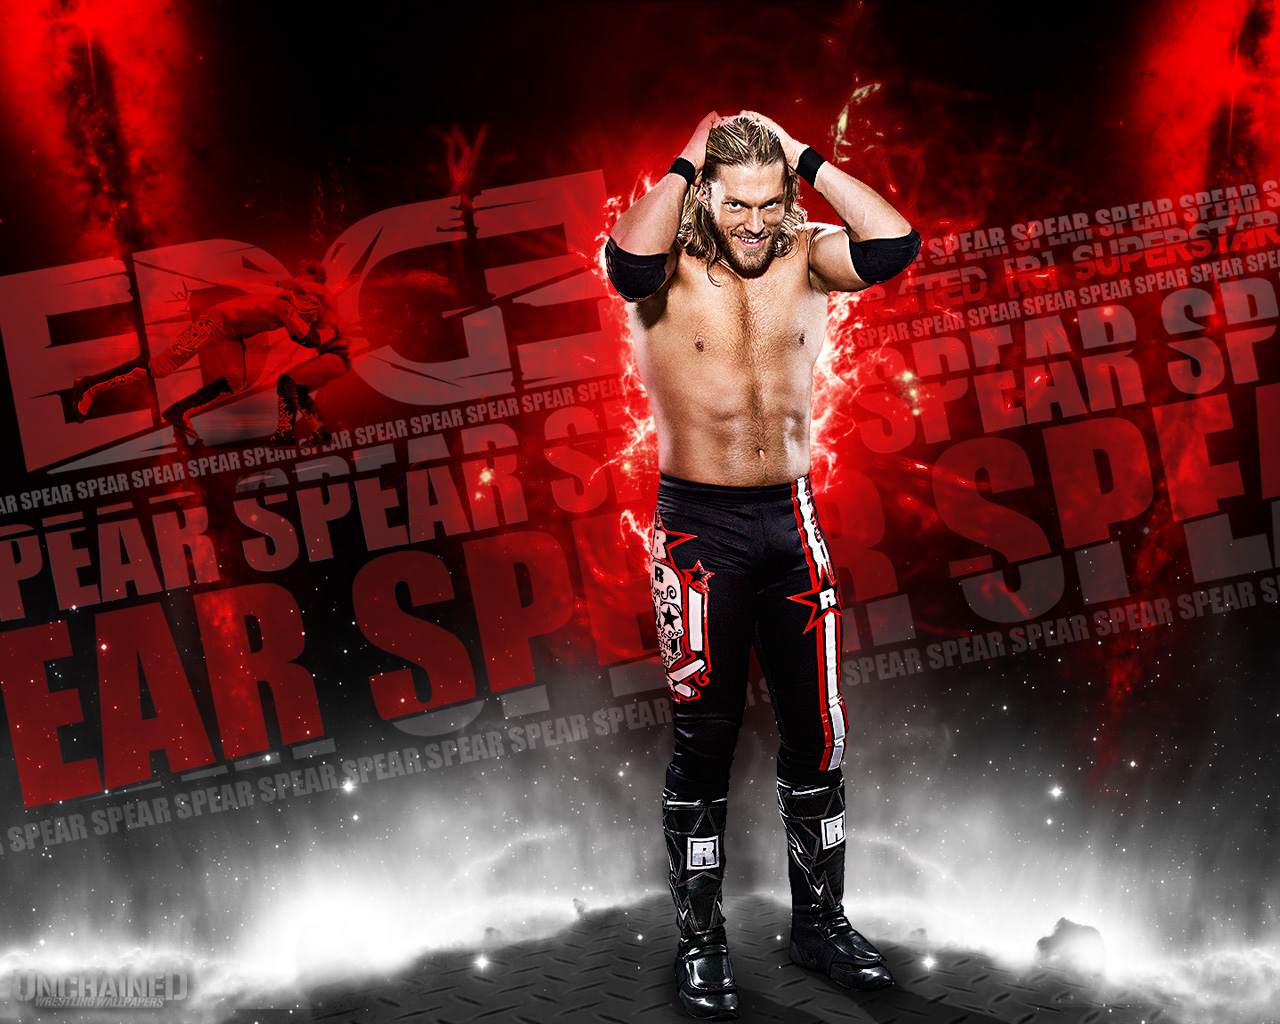 Edge wallpapers 2012 wwe superstars wwe wallpapers wwe - Wwe divas wallpapers ...